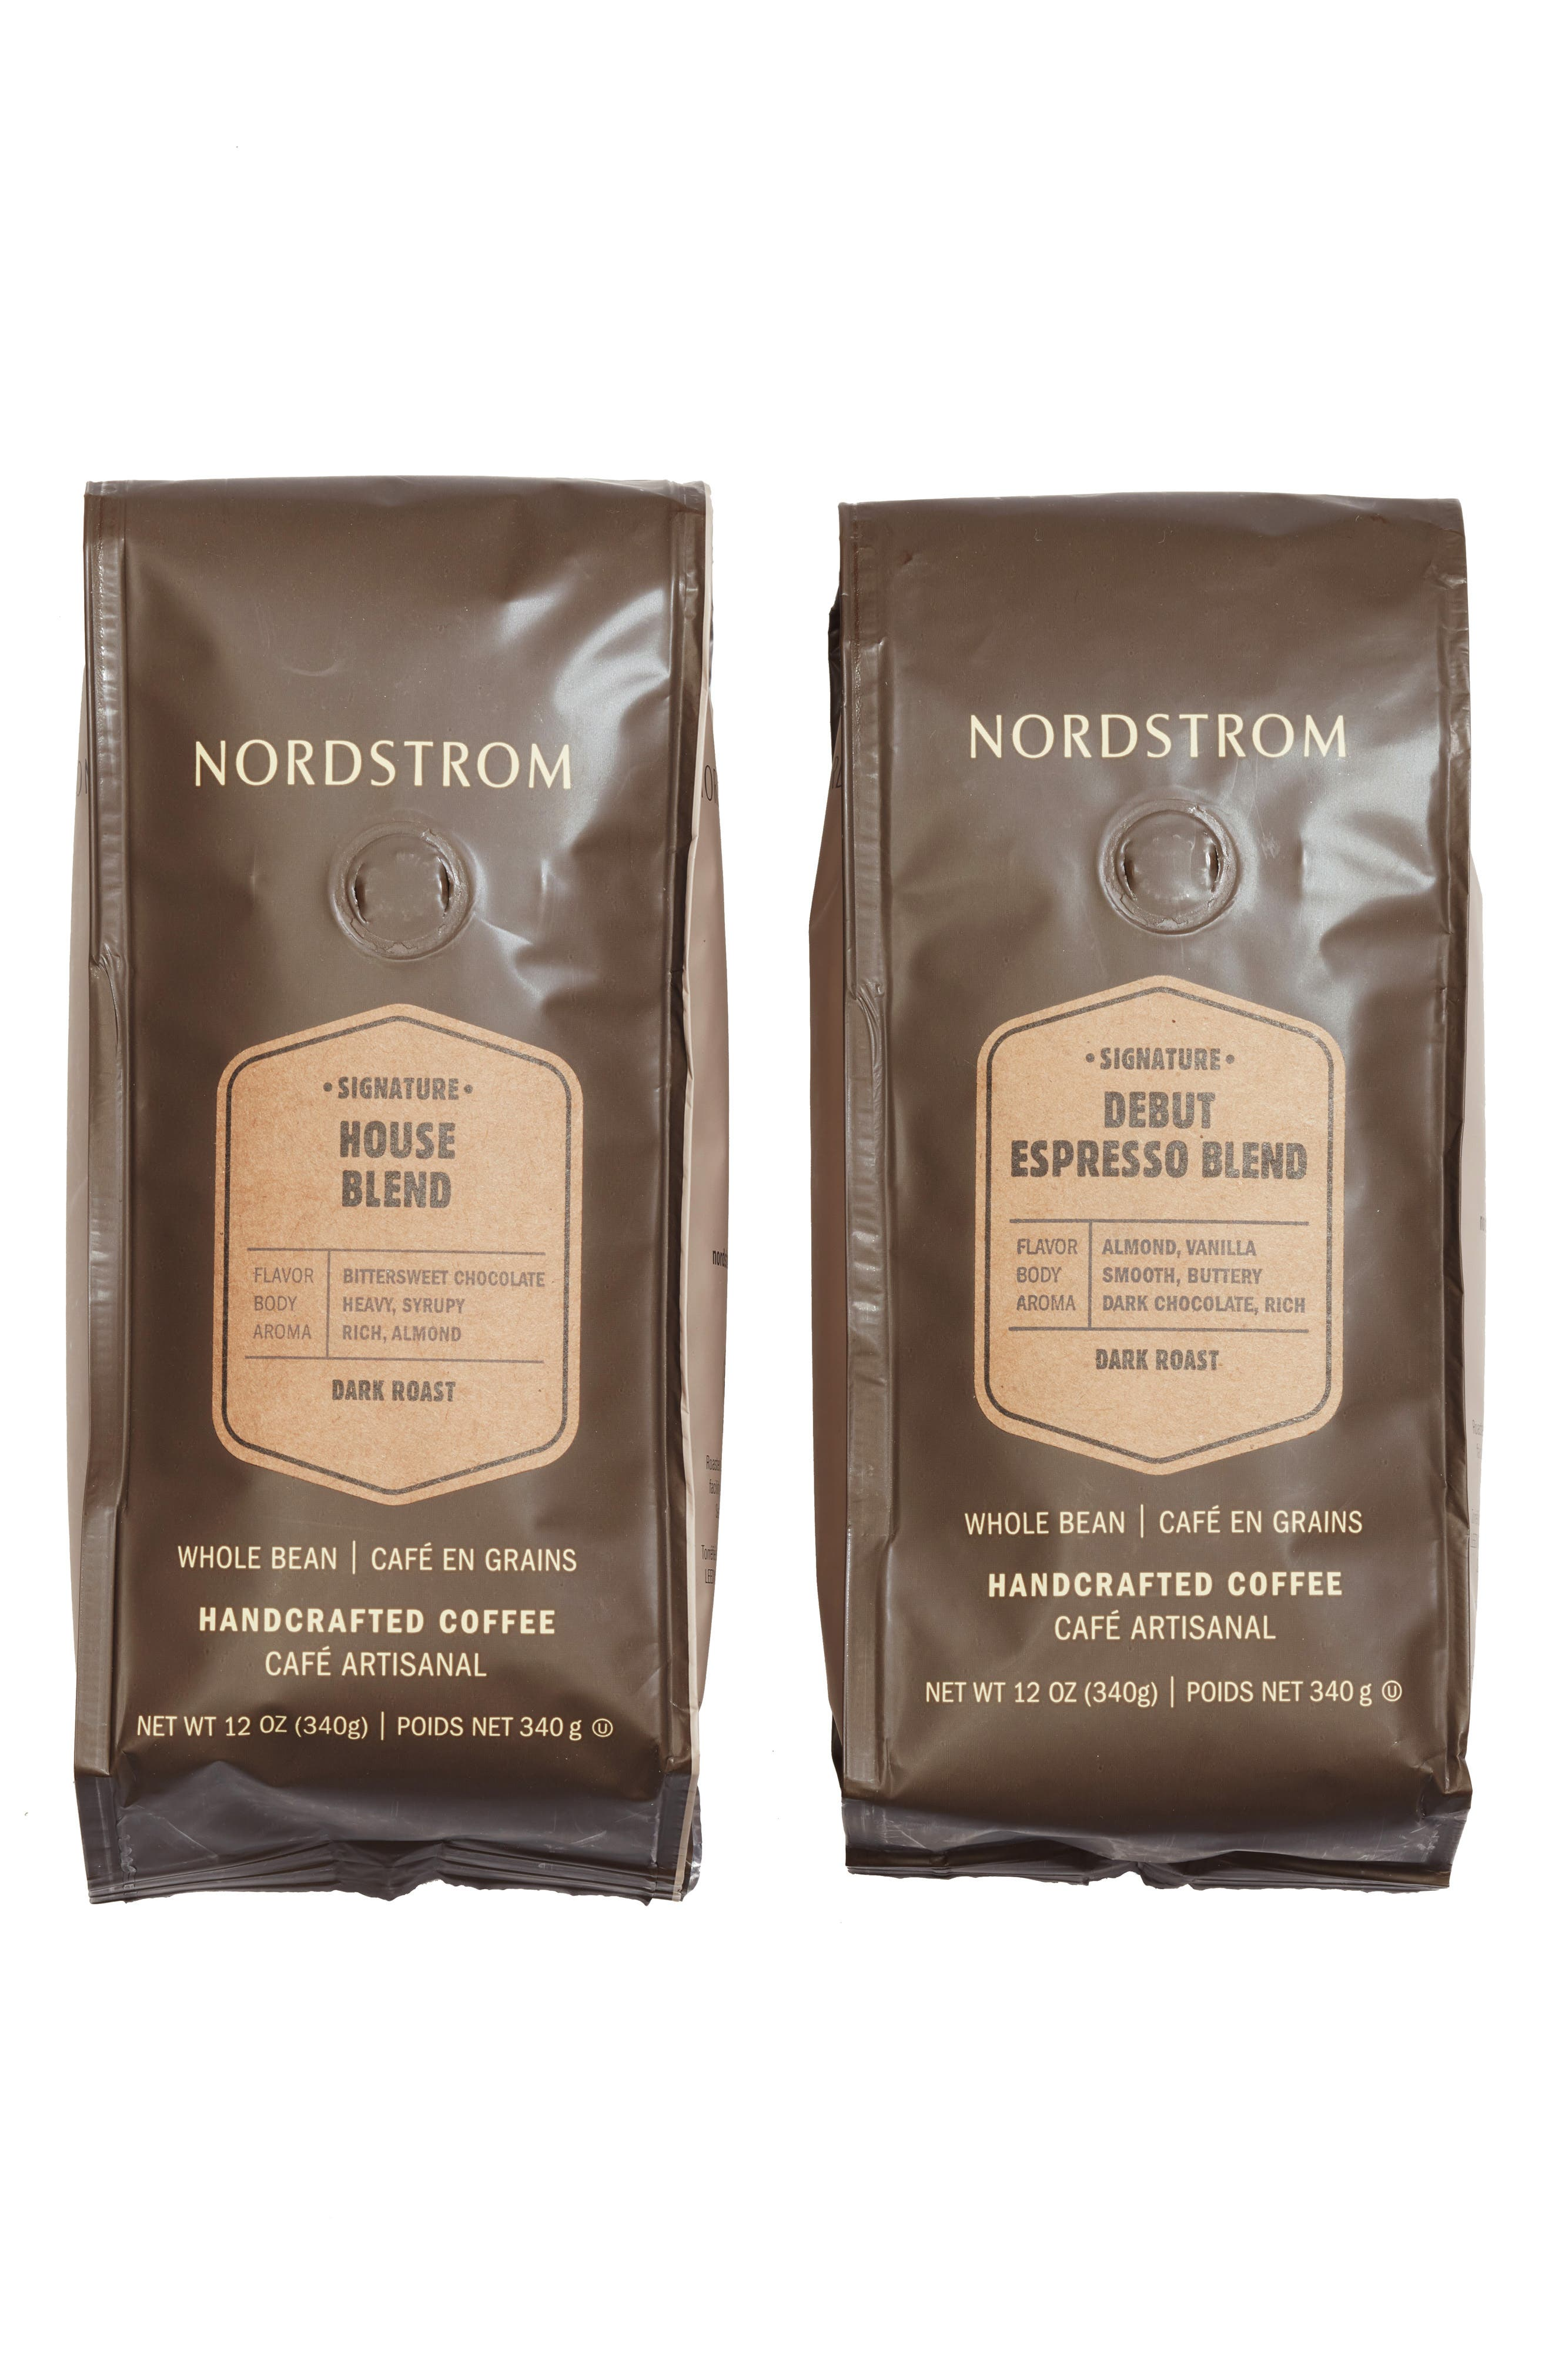 NORDSTROM, 2-Pack Coffee Debut Espresso Blend Whole Bean Coffee, Main thumbnail 1, color, BEIGE/ KHAKI